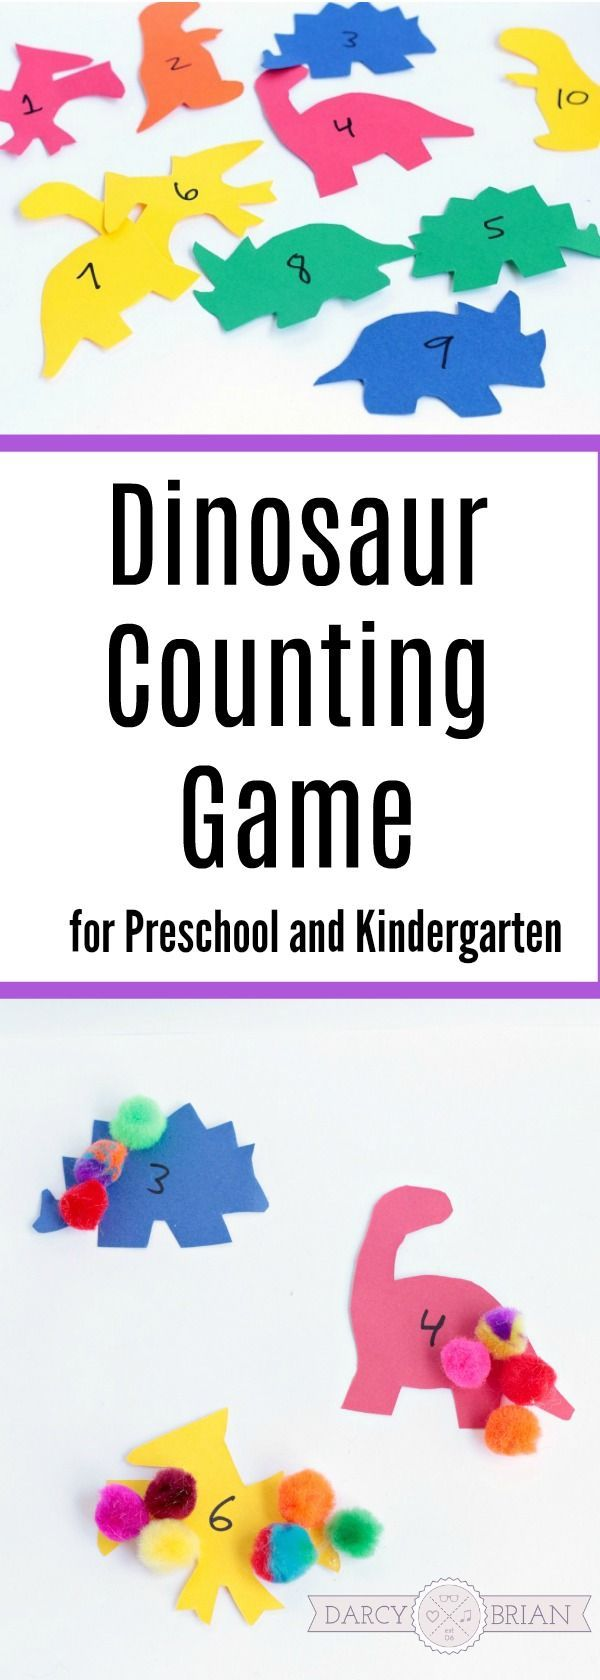 25 best dinosaur activities for preschool ideas on pinterest. Black Bedroom Furniture Sets. Home Design Ideas